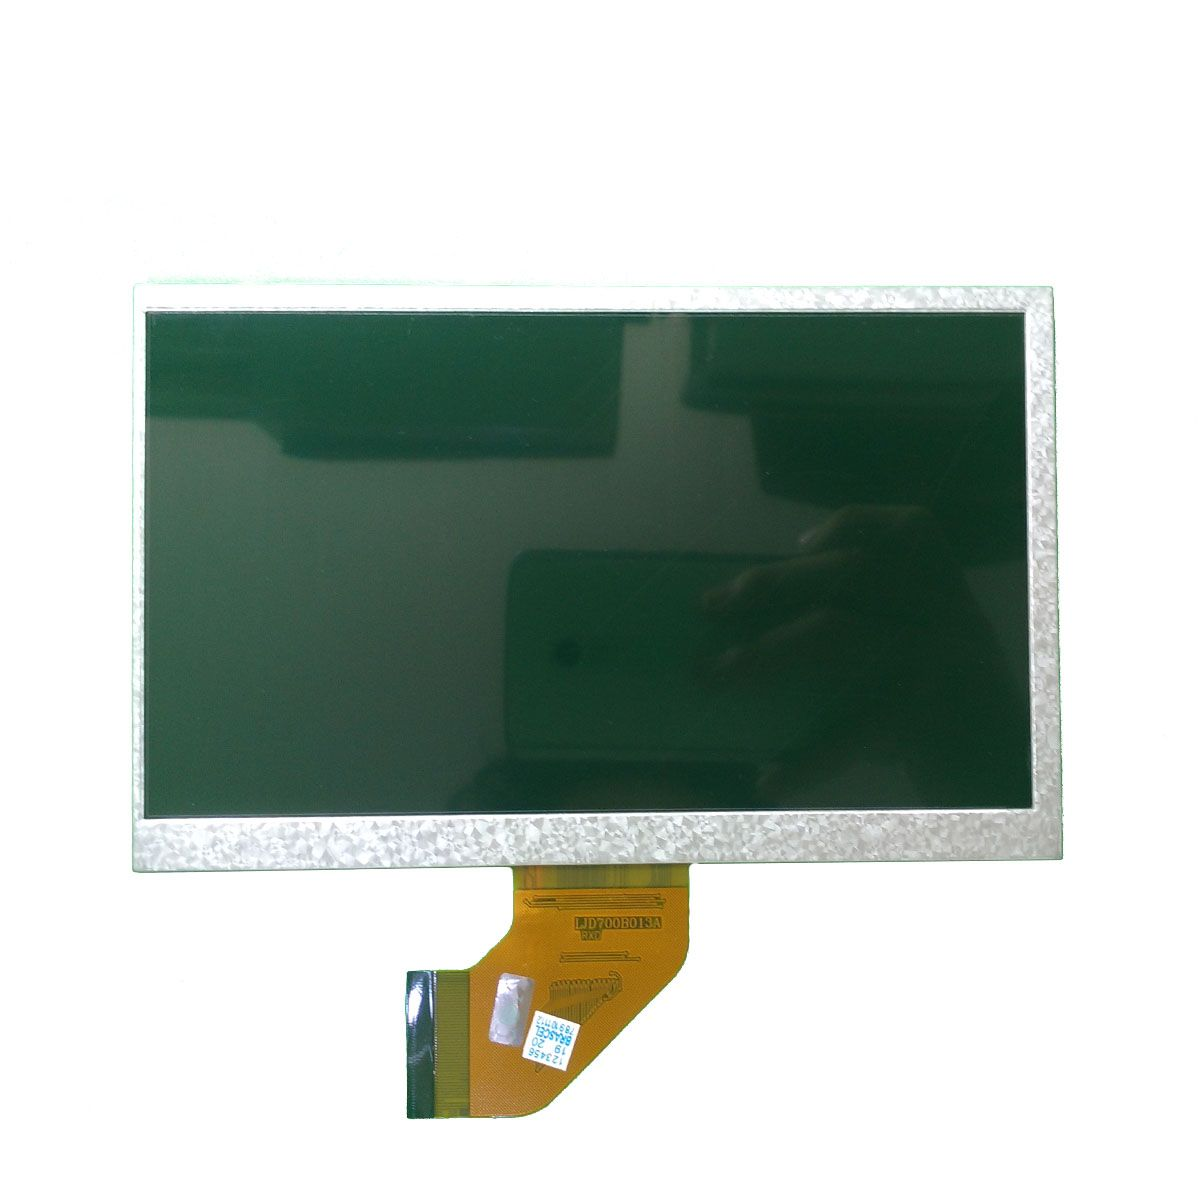 Display Lcd Visor Tablet Multilaser M7s Quad Core 7 Polegadas Original